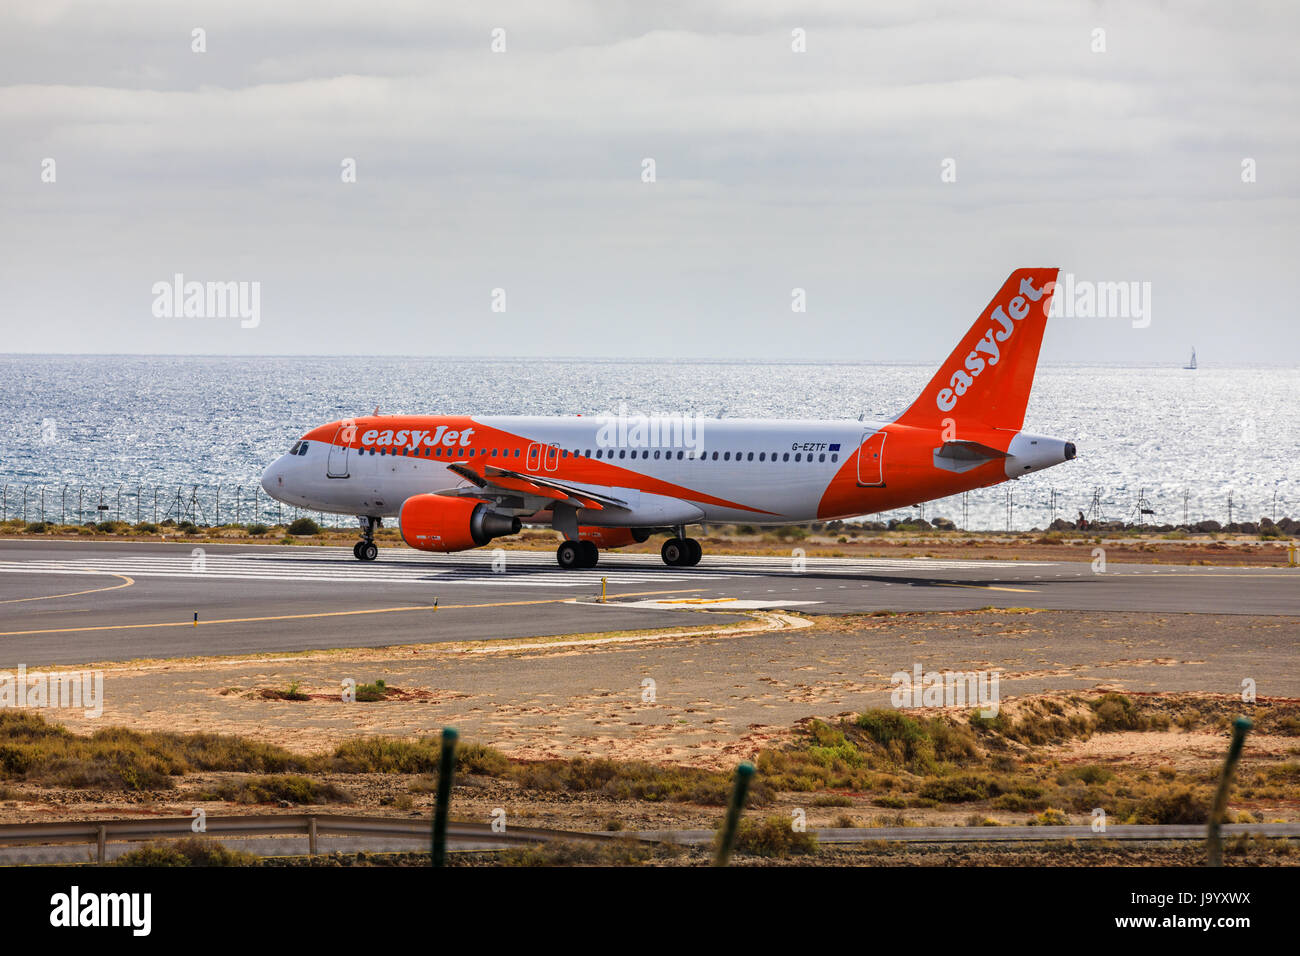 ARECIFE, SPAIN - APRIL, 15 2017: AirBus A319-100 of easyjet ready to take off at Lanzarote Airport - Stock Image